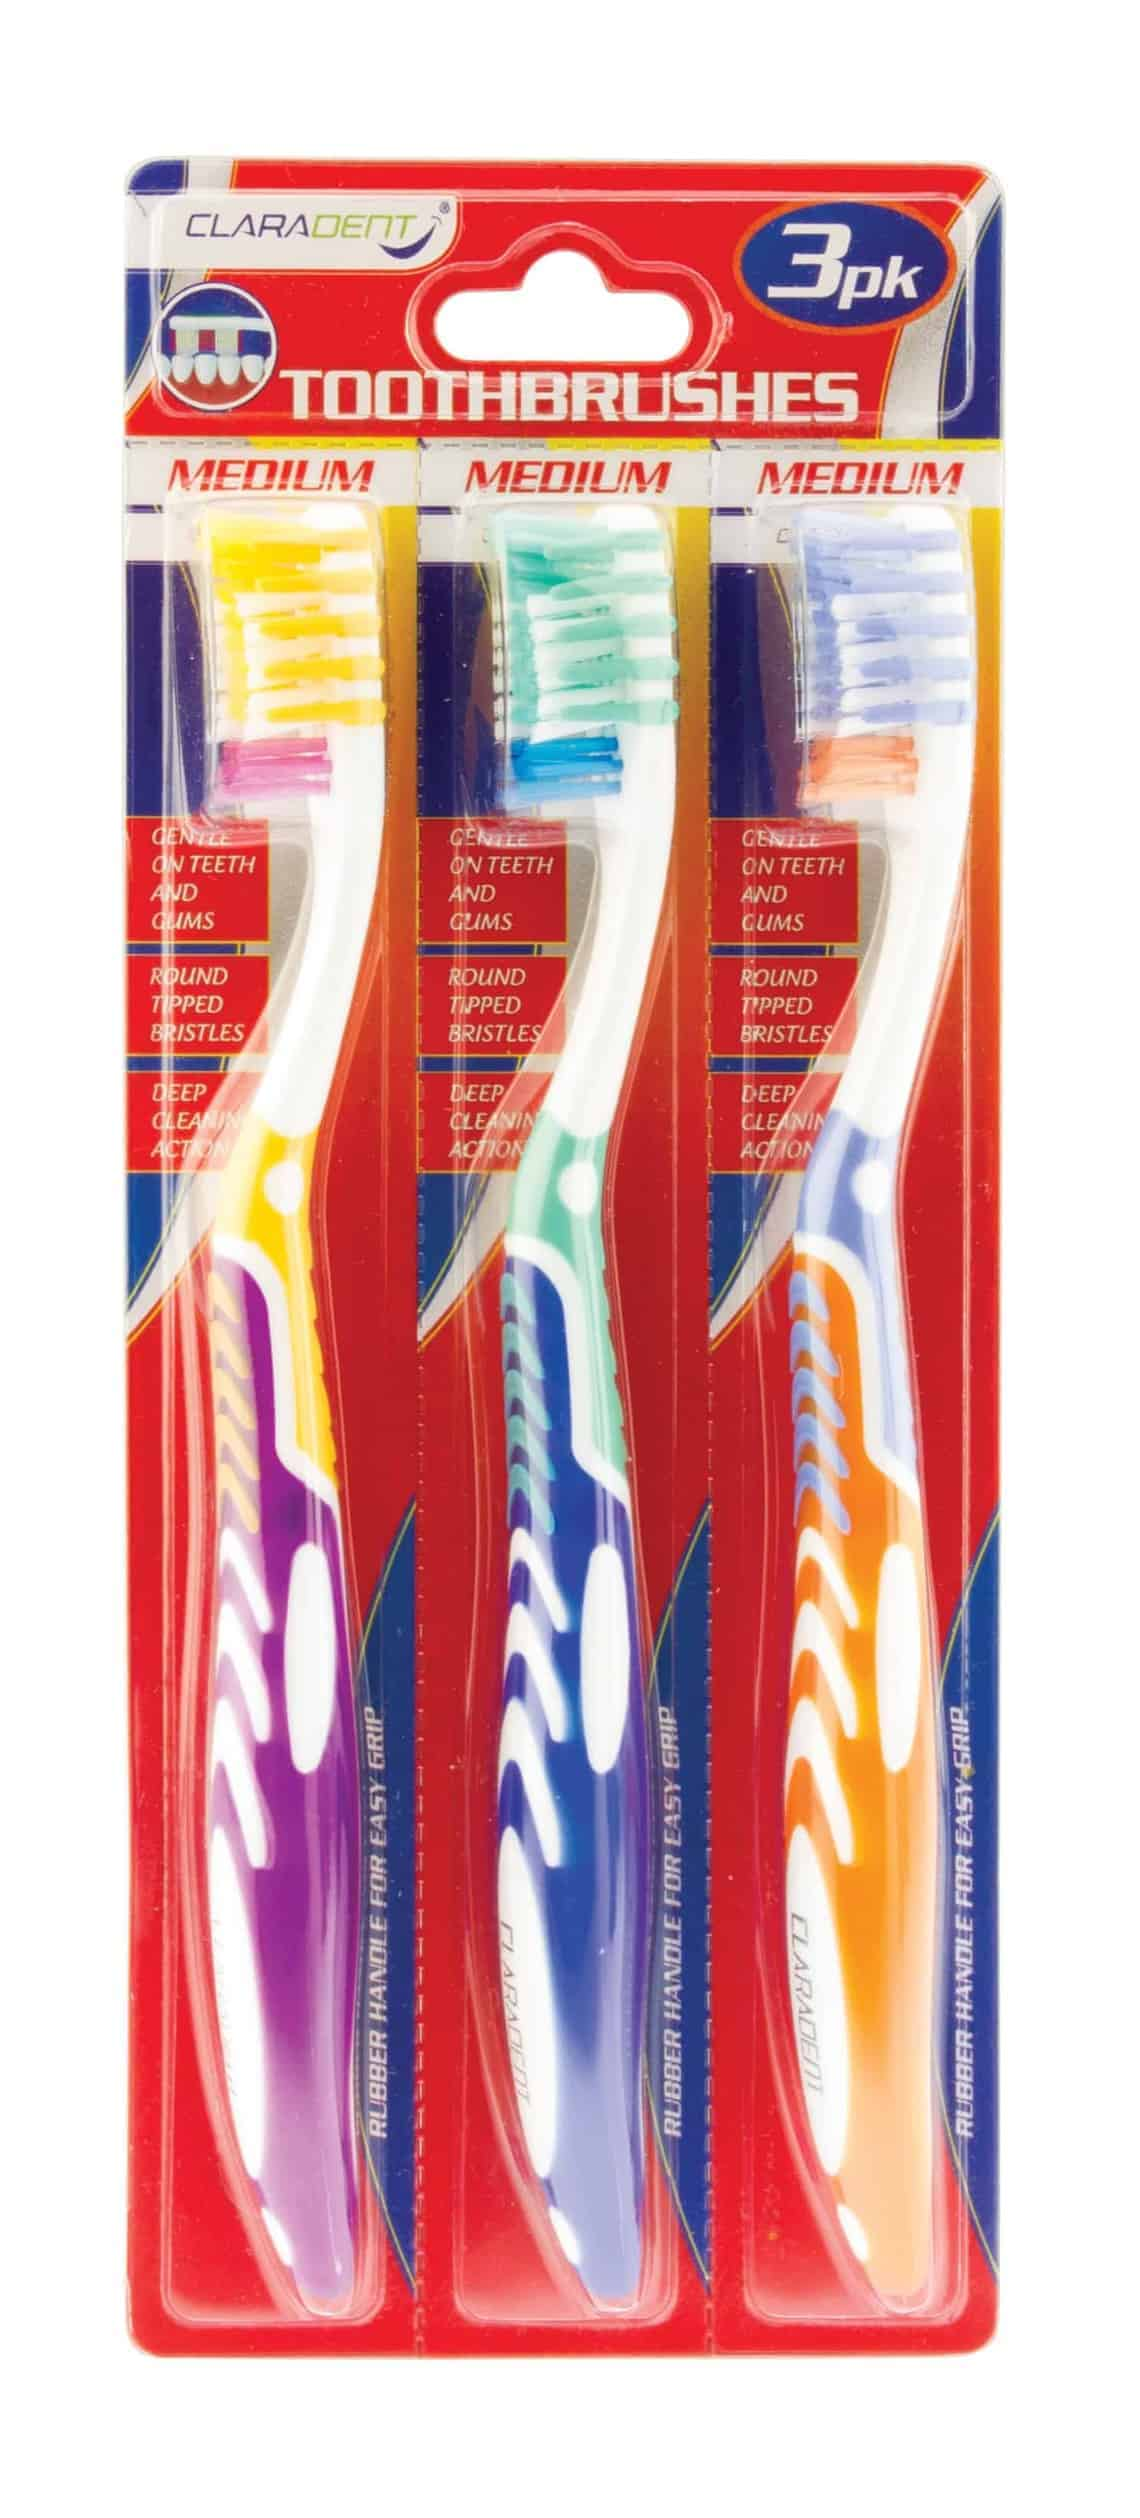 Claradent Adult Toothbrushes-3Pk